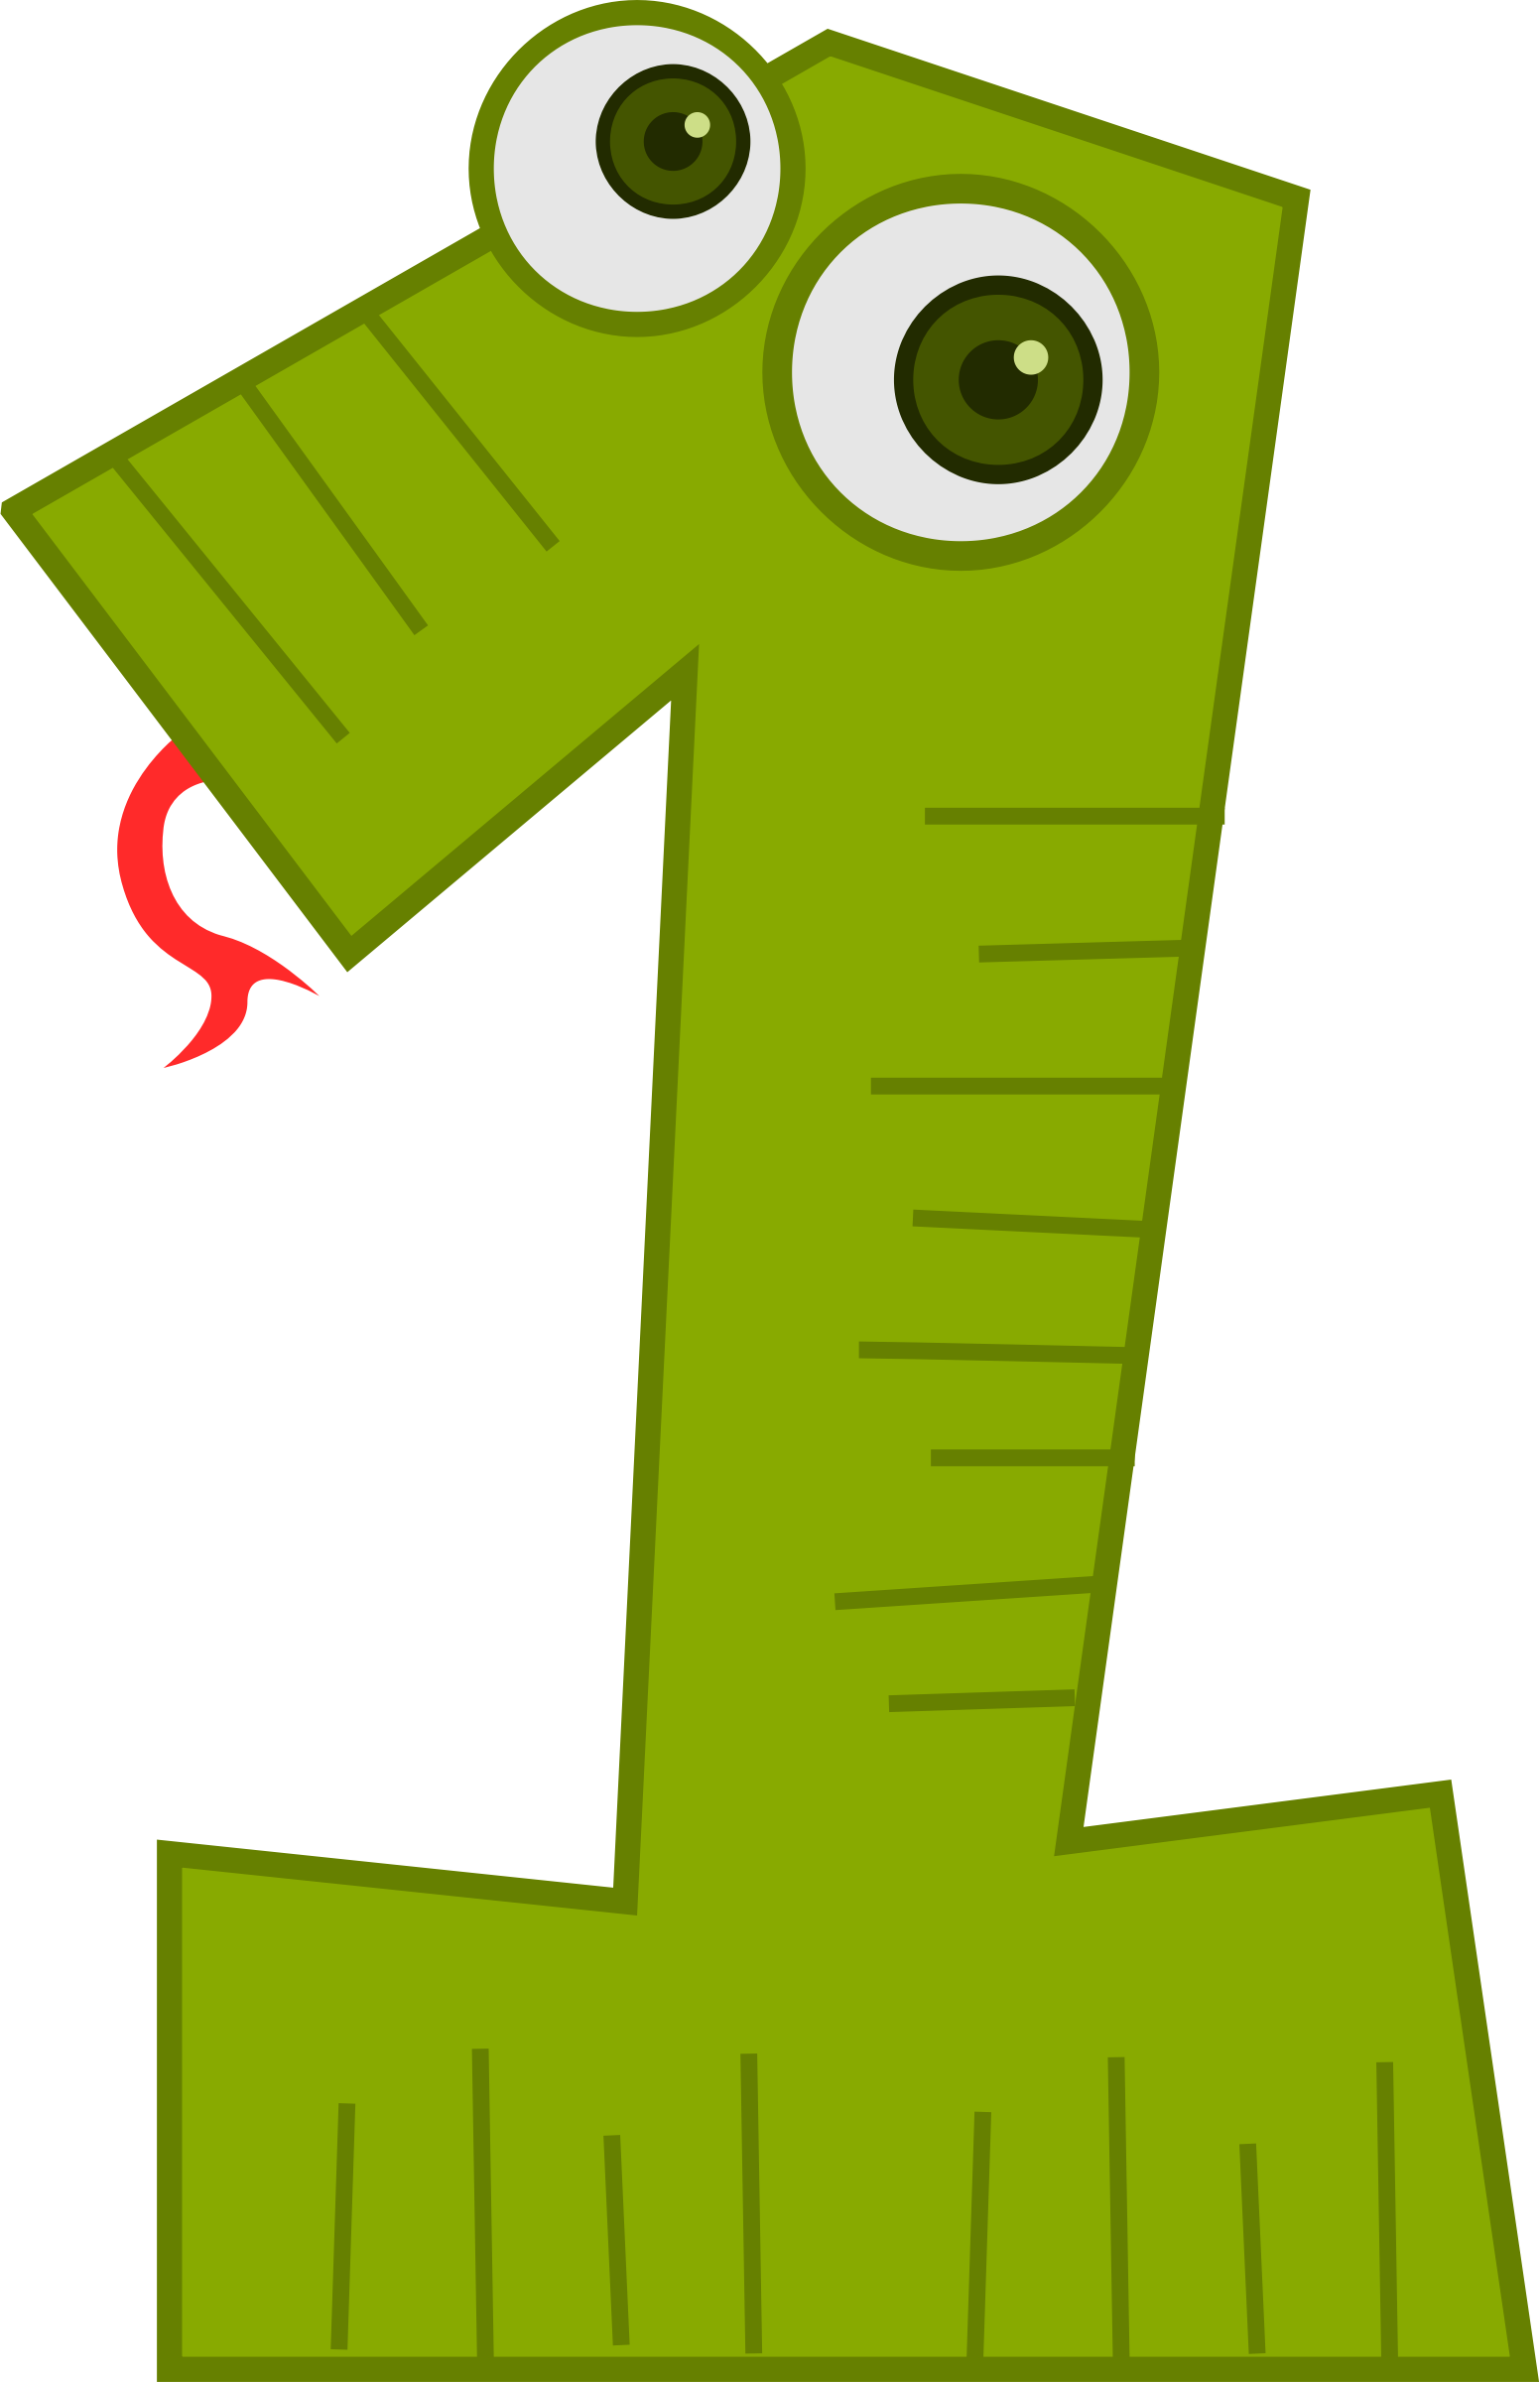 Clipart numbers detective. Number animals snake by